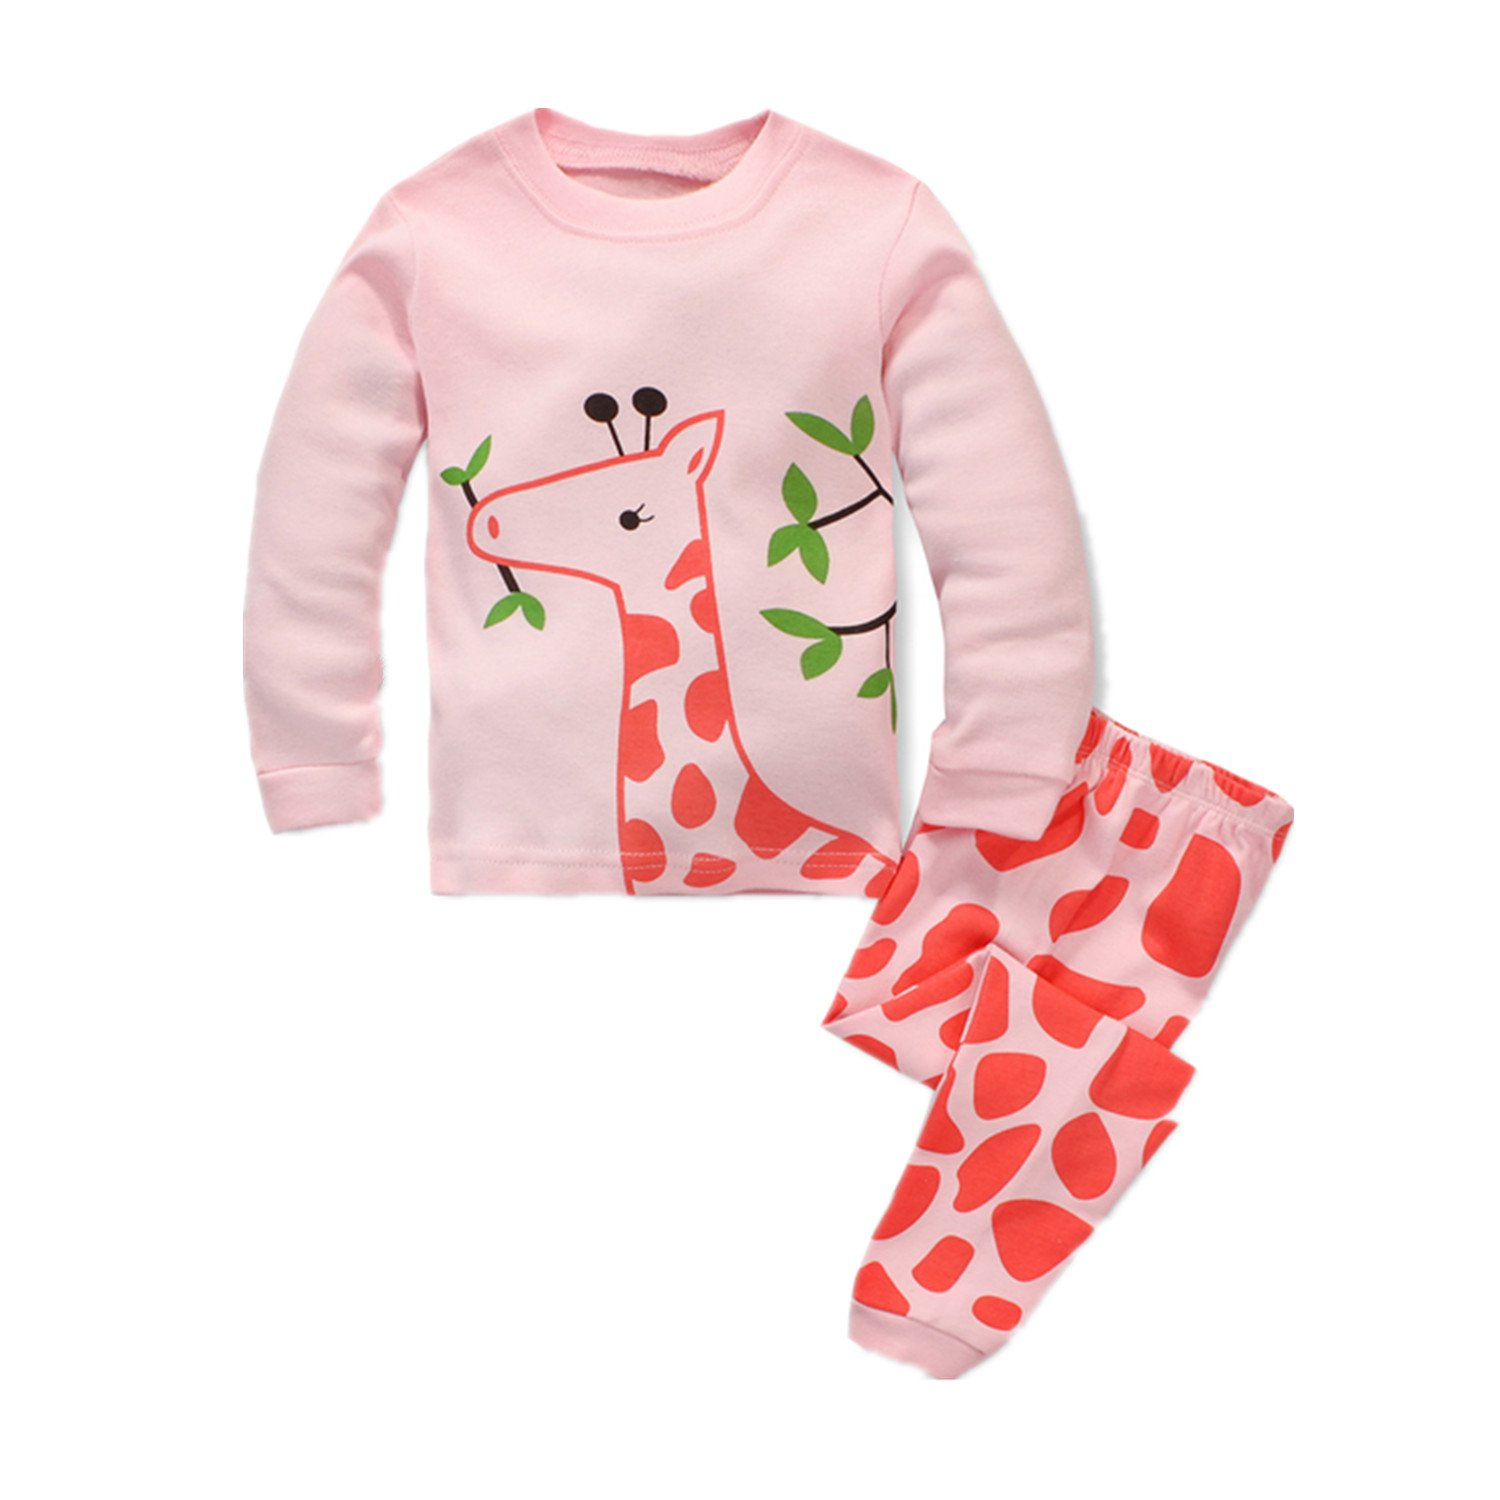 Little Girls Mermaid Pajamas 2 Piece Set 100% Cotton Sleepwear Toddler Clothes for Kids Baby Horse Style PJs Size 2-7T by Popshion (Image #1)